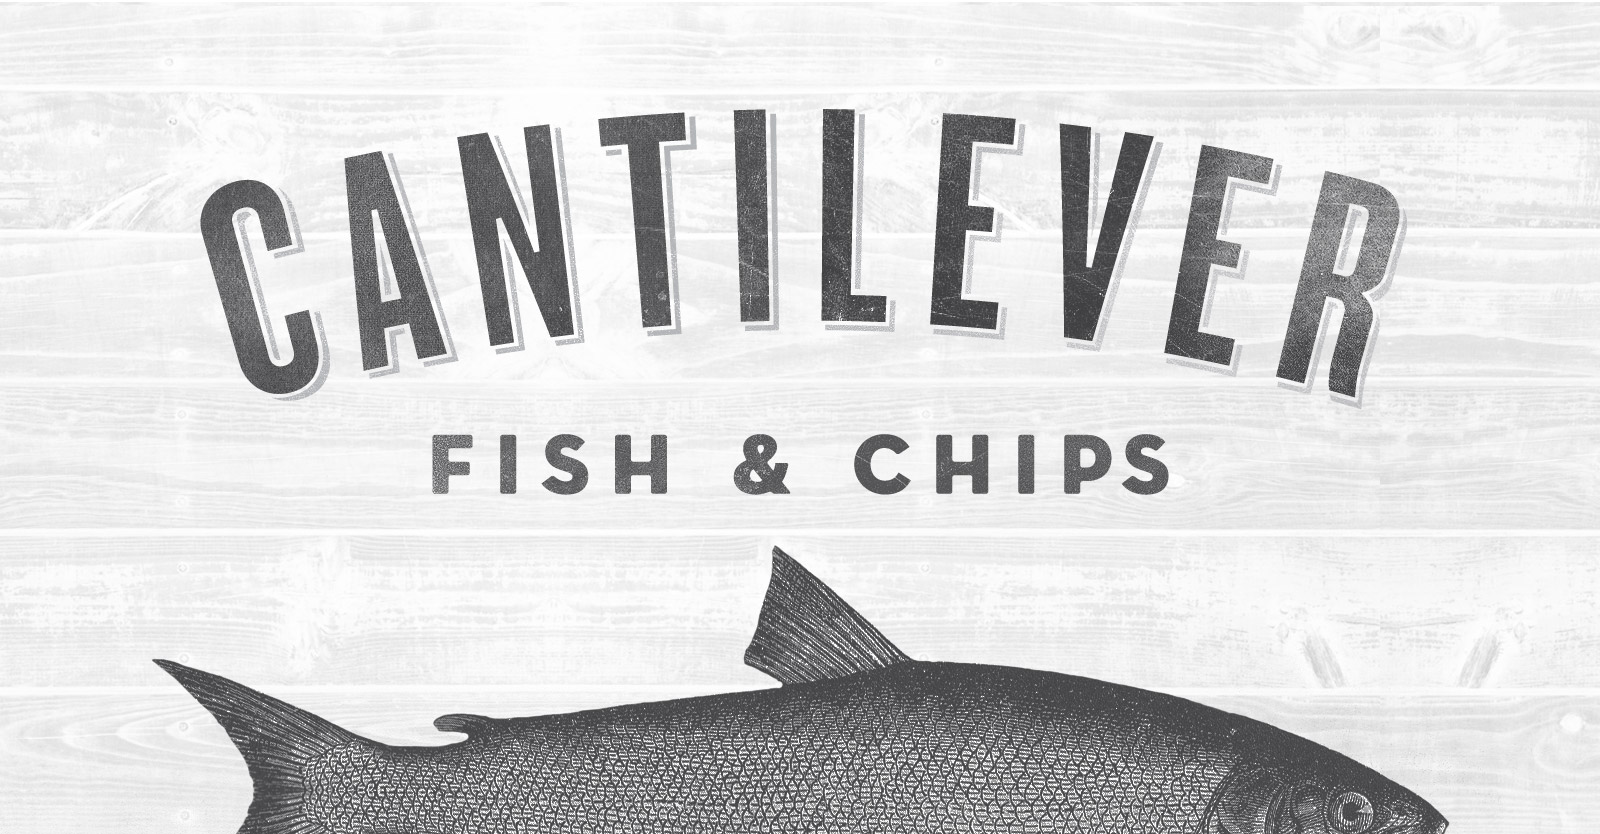 Cantilever Chippy Typography